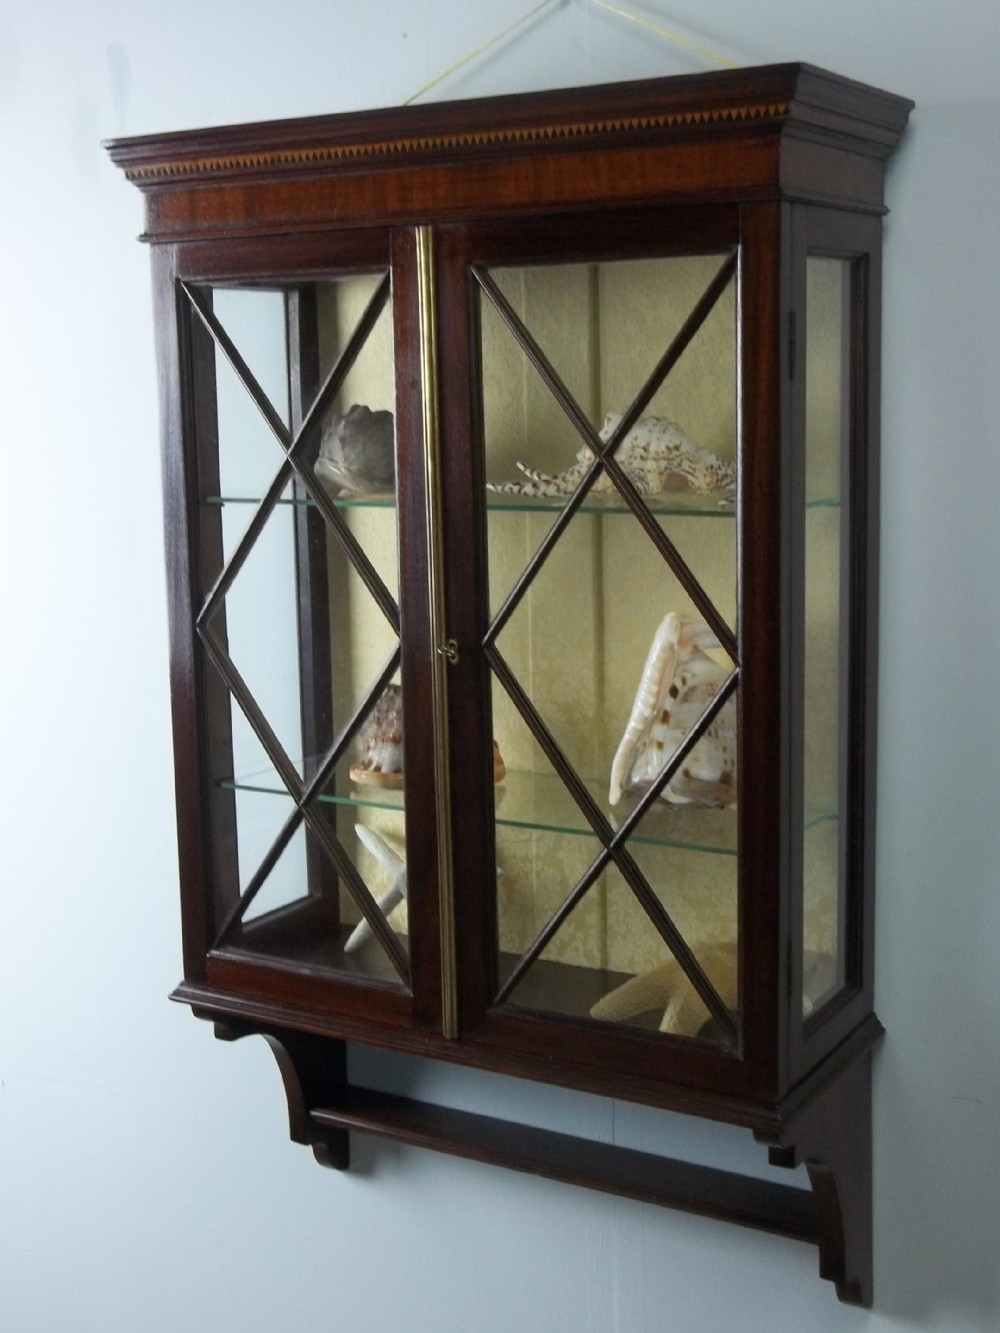 Edwardian Mahogany Small Narrow Inlaid Hanging Glazed Wall Display Cabinet  C1900